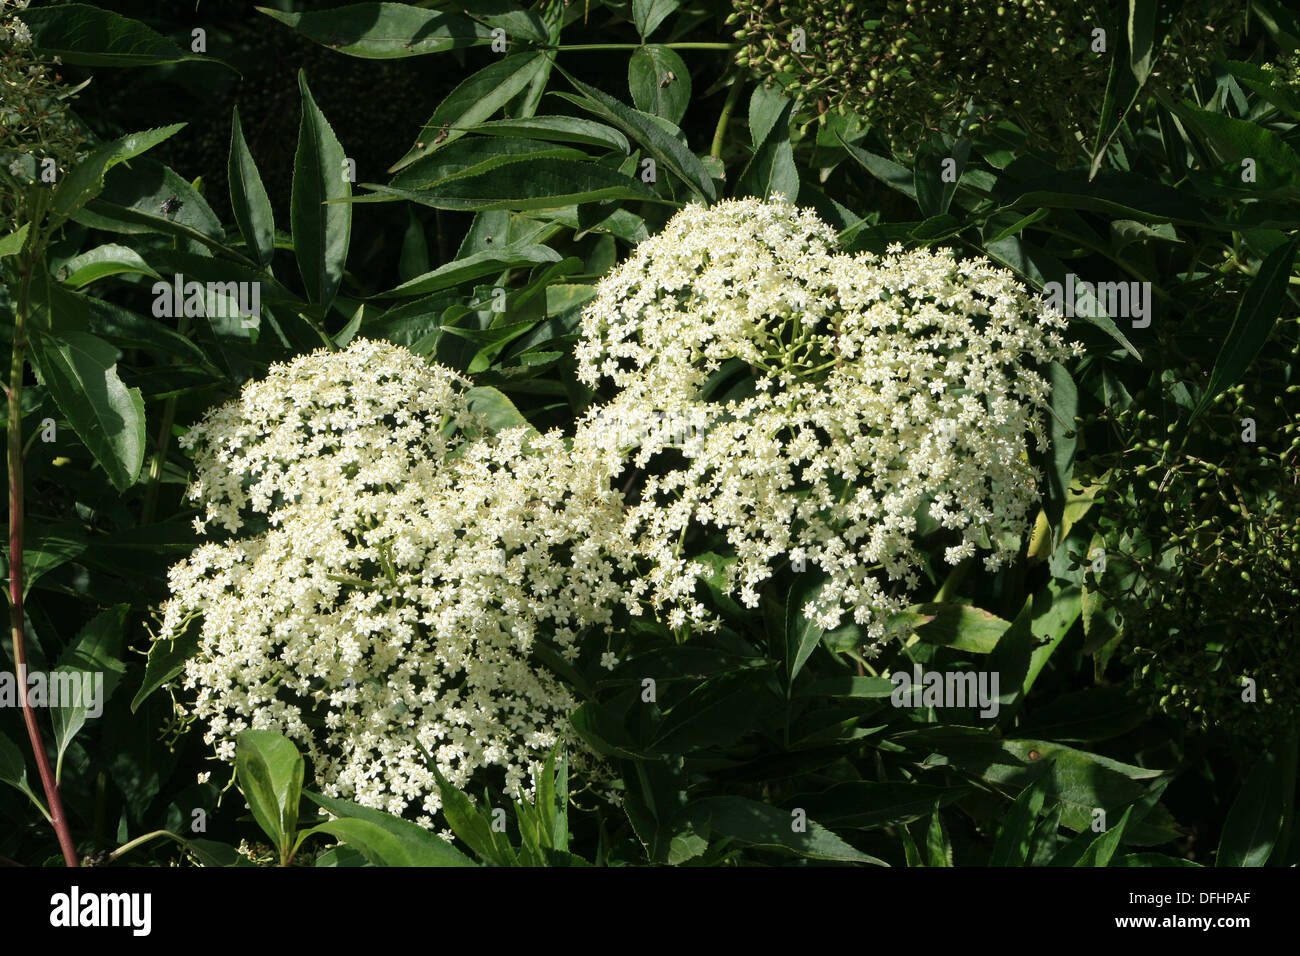 Bunches Of White Flowers Stock Photos Bunches Of White Flowers